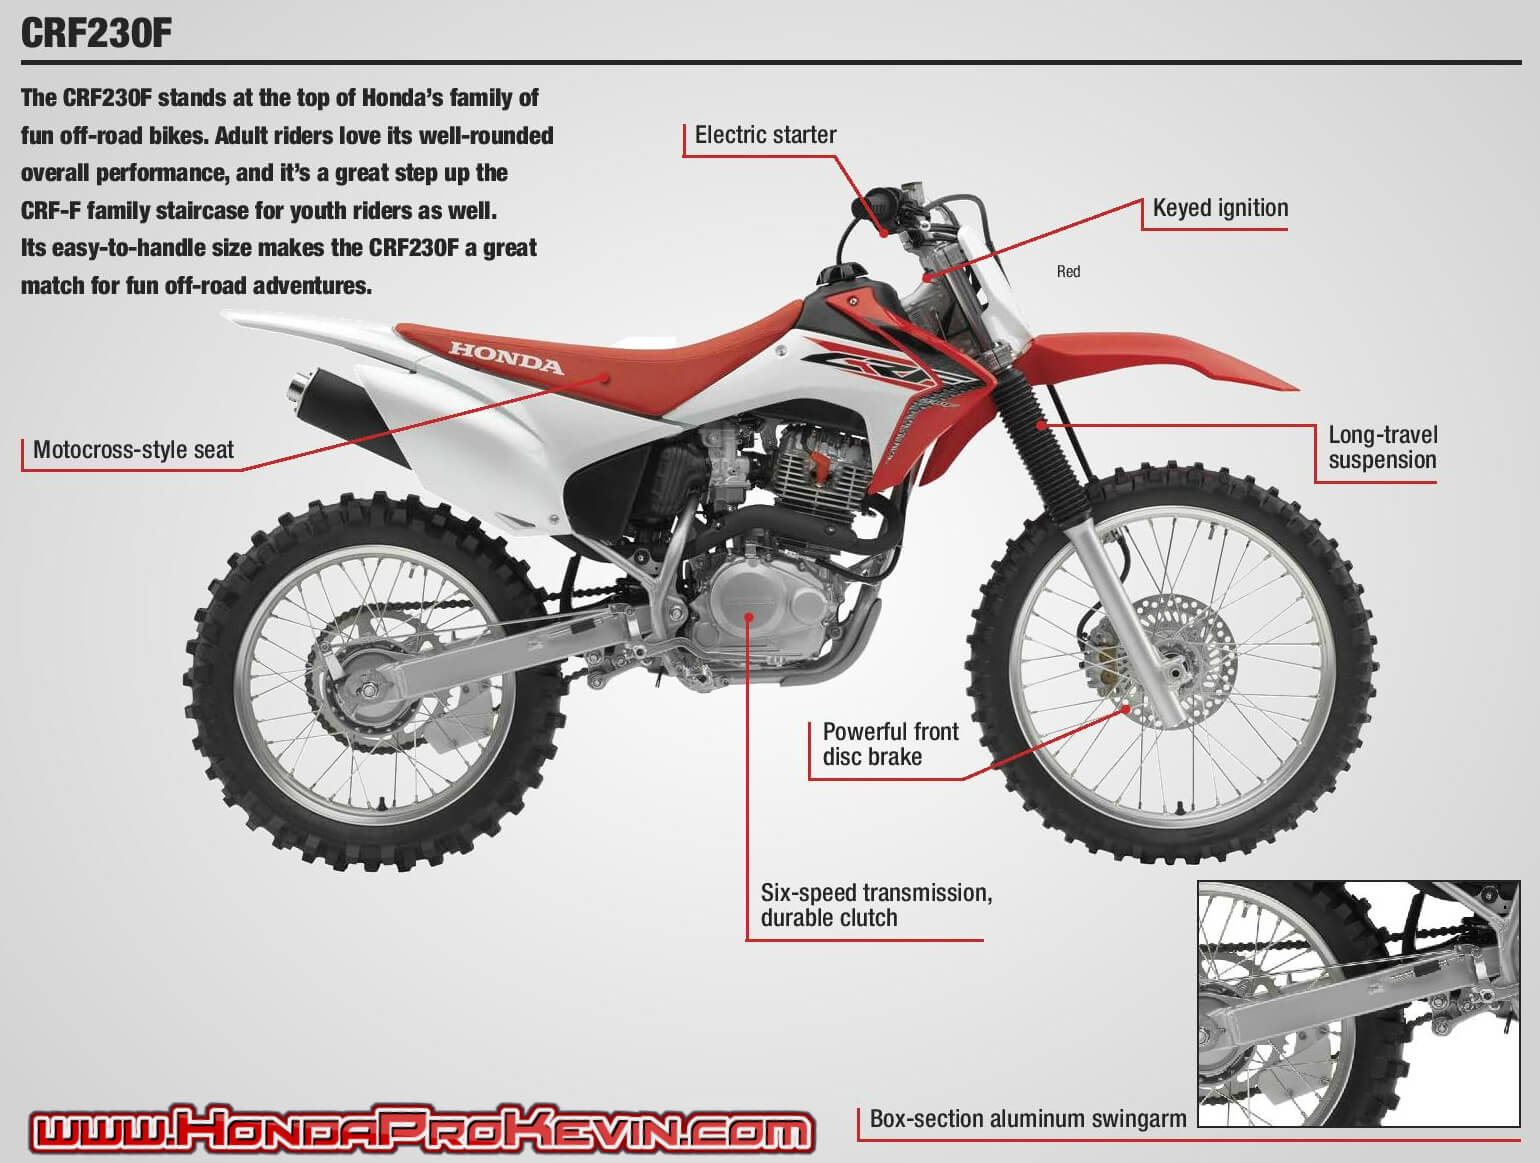 Honda CRF230F Review / Specs + Features Explained | Motorcycle / CRF Dirt & Trail Bike